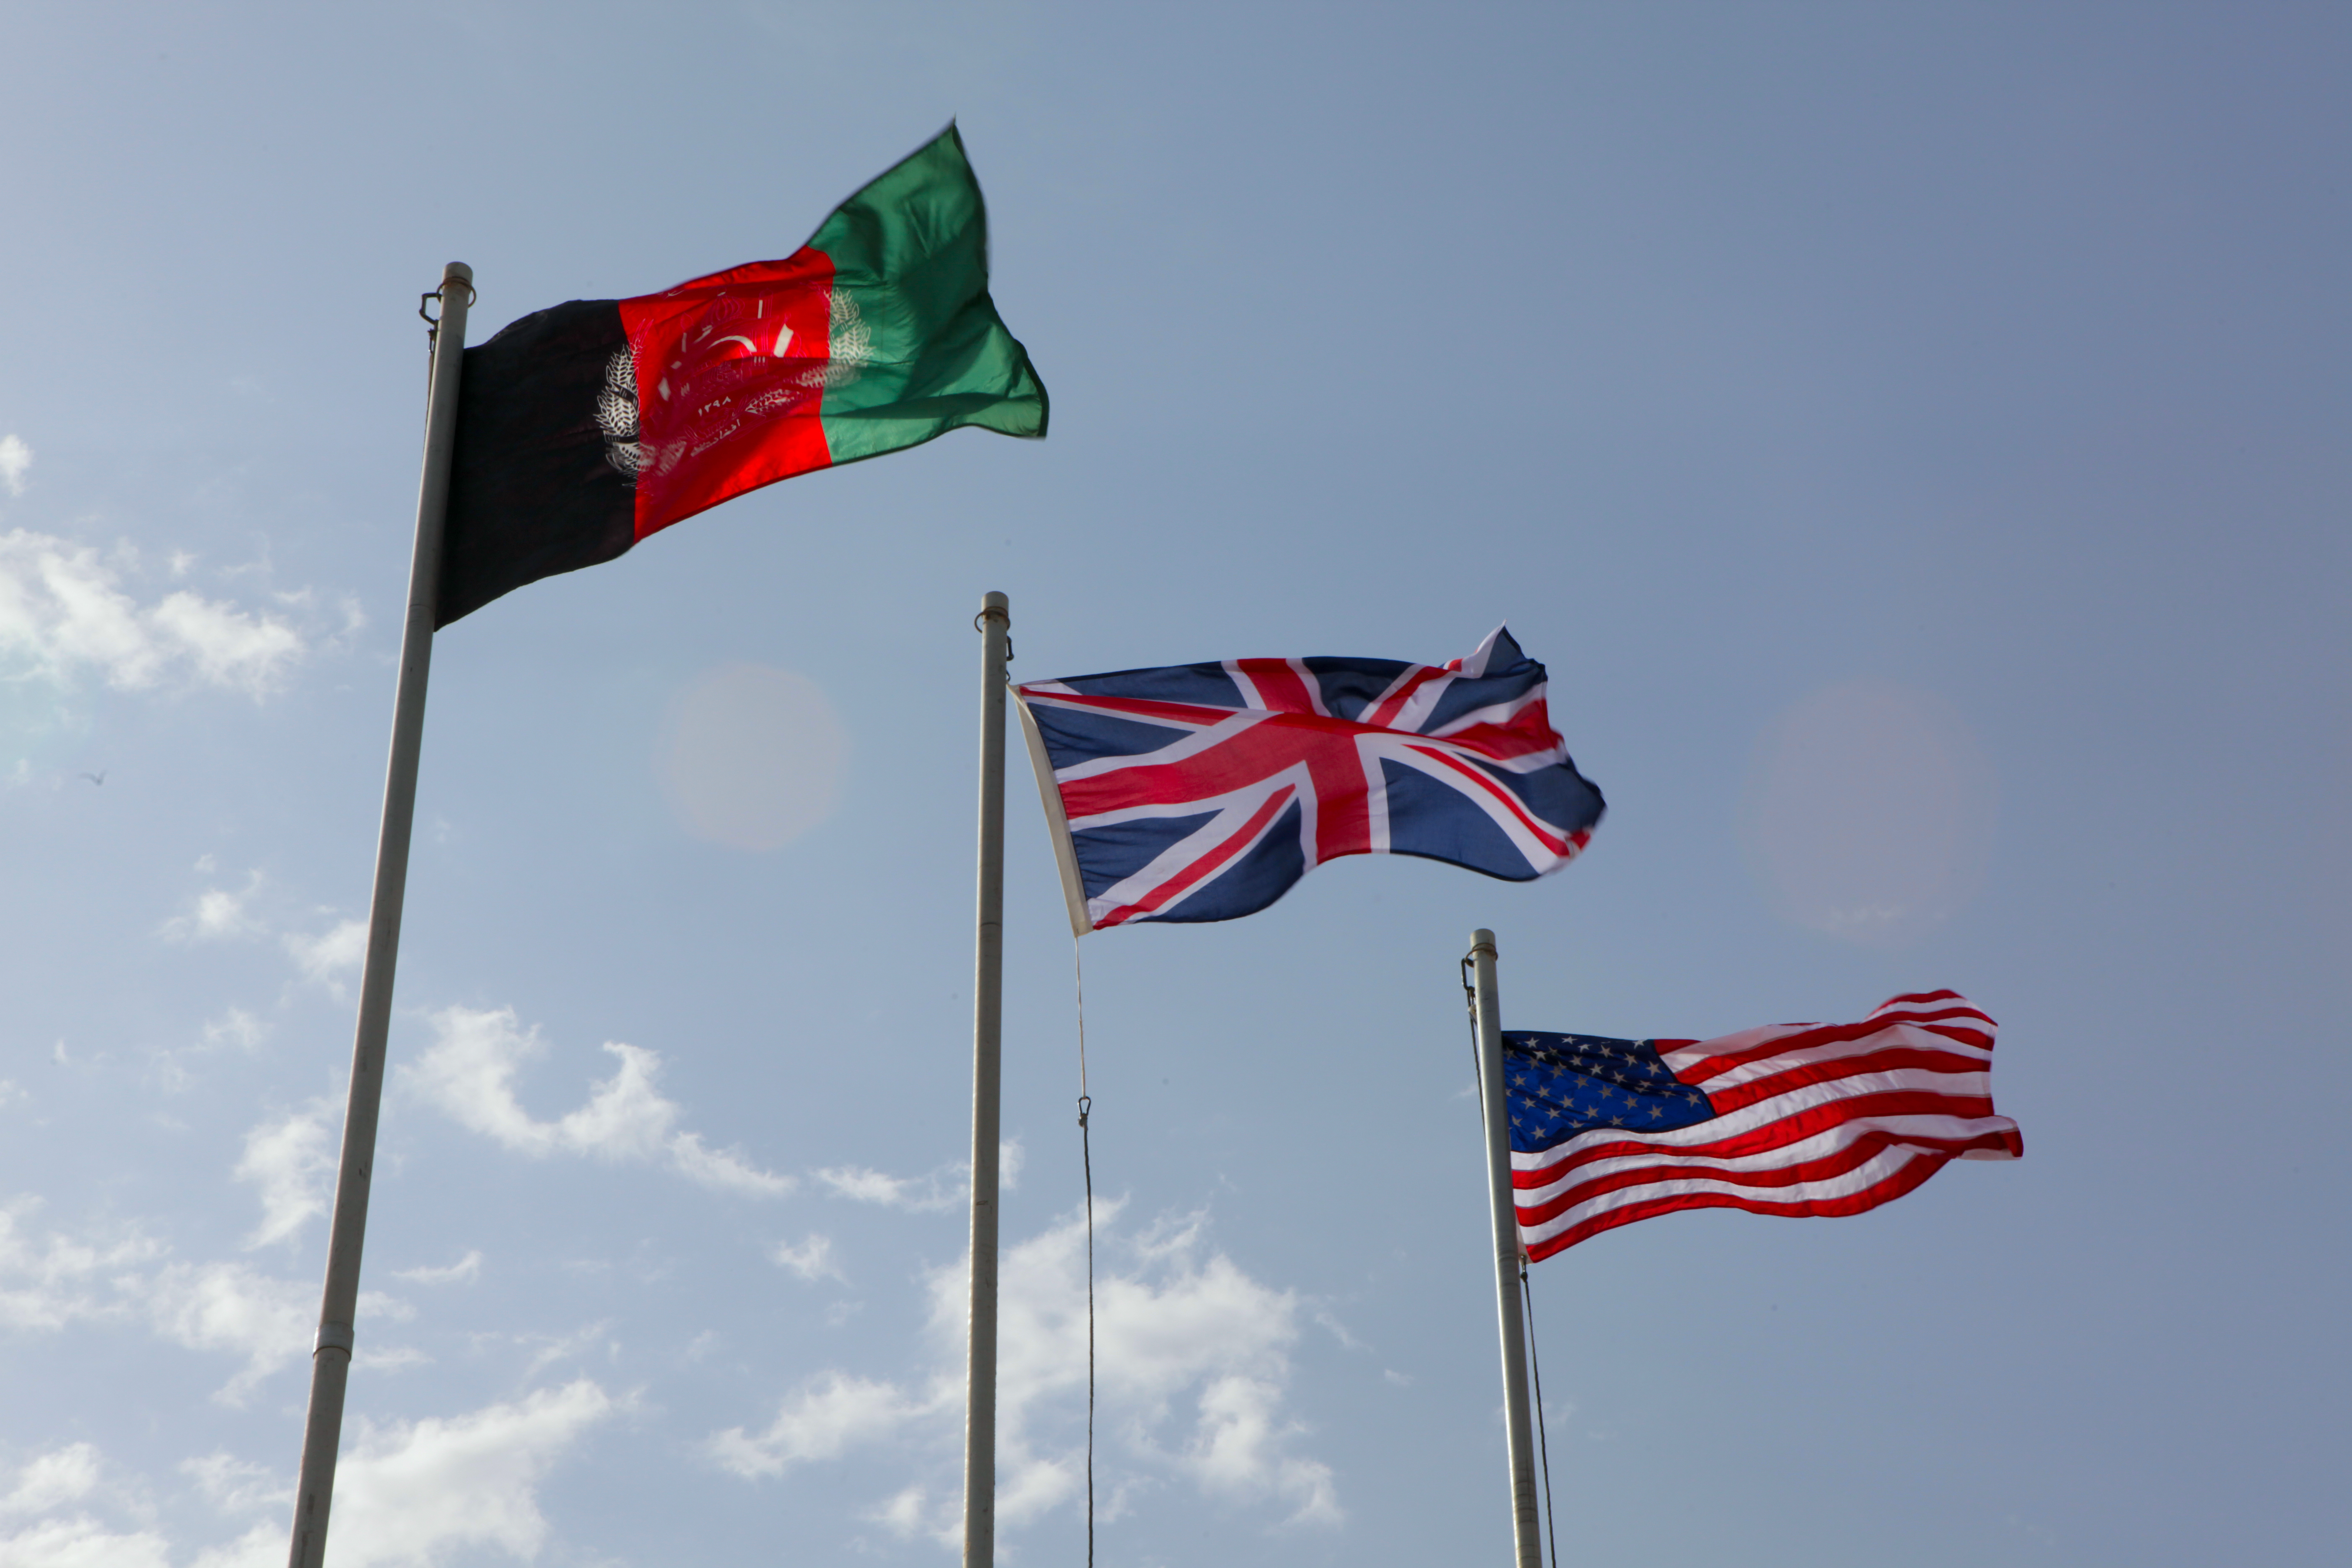 The Union Flag of the United Kingdom waves in the Afghanistan breeze between the Afghanistan and United States flags (March 13, 2012)